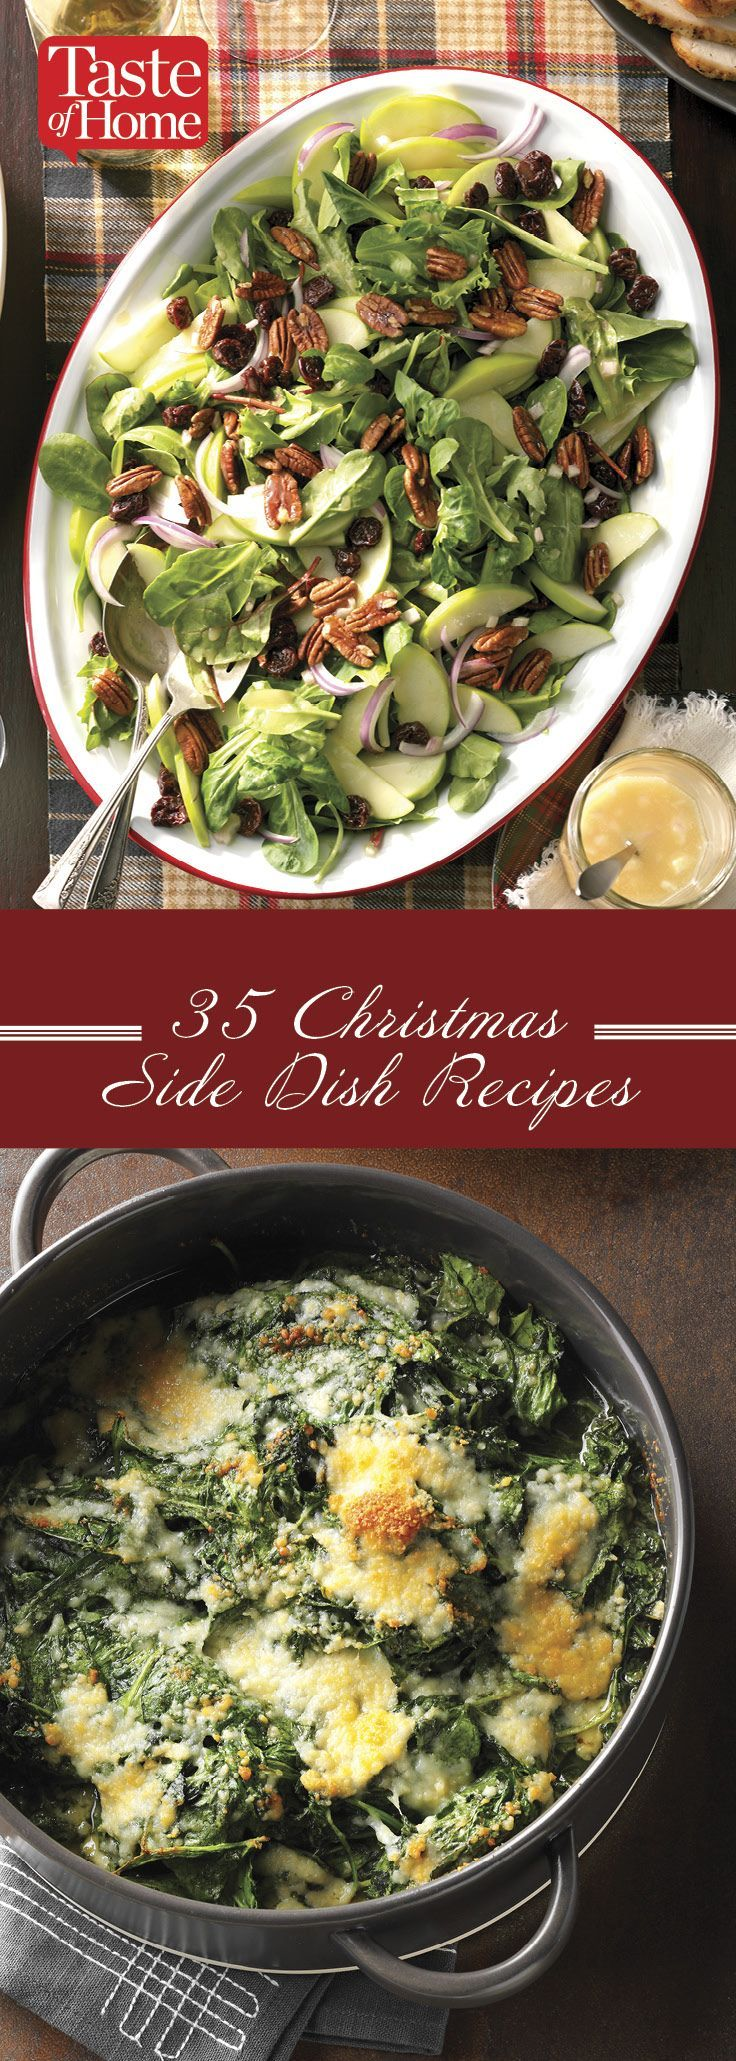 35 Christmas Side Dish Recipes Easy Vegetable Side